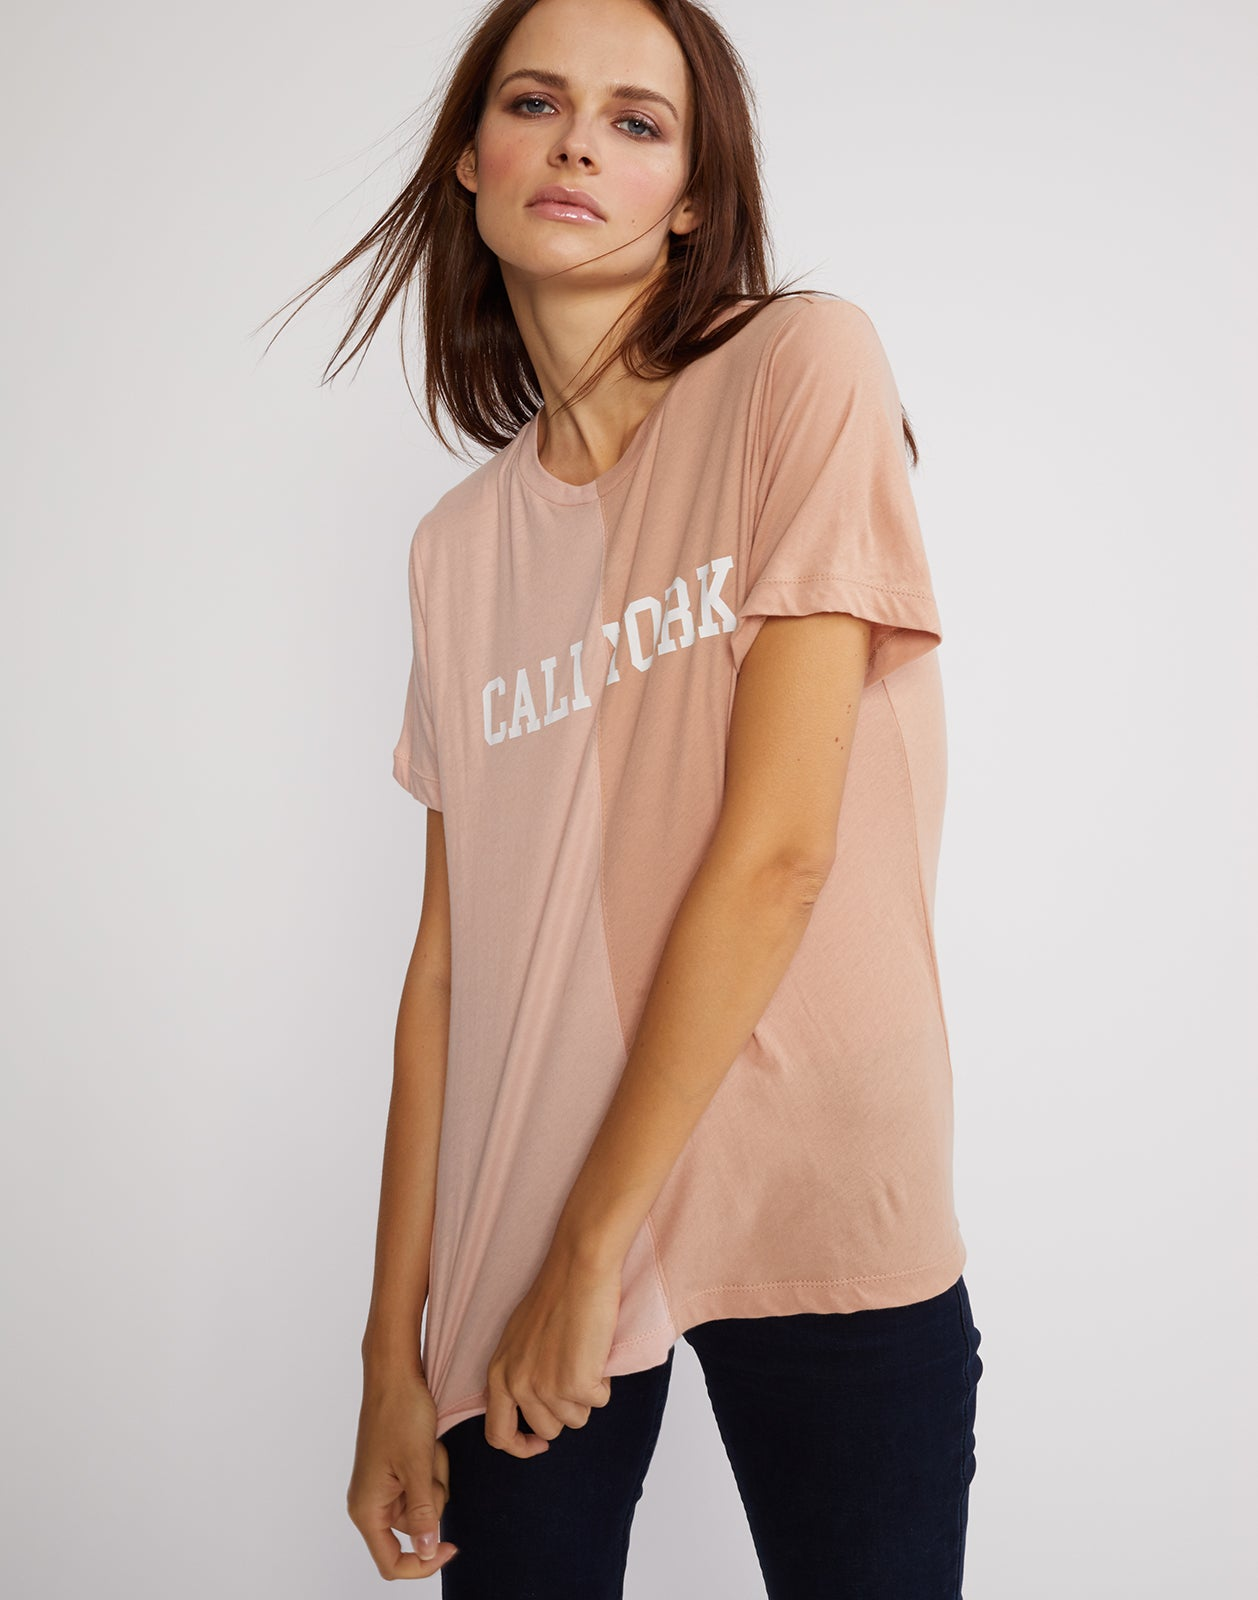 Front view of the short sleeved half beige, half pink caliyork tee in soft cotton.